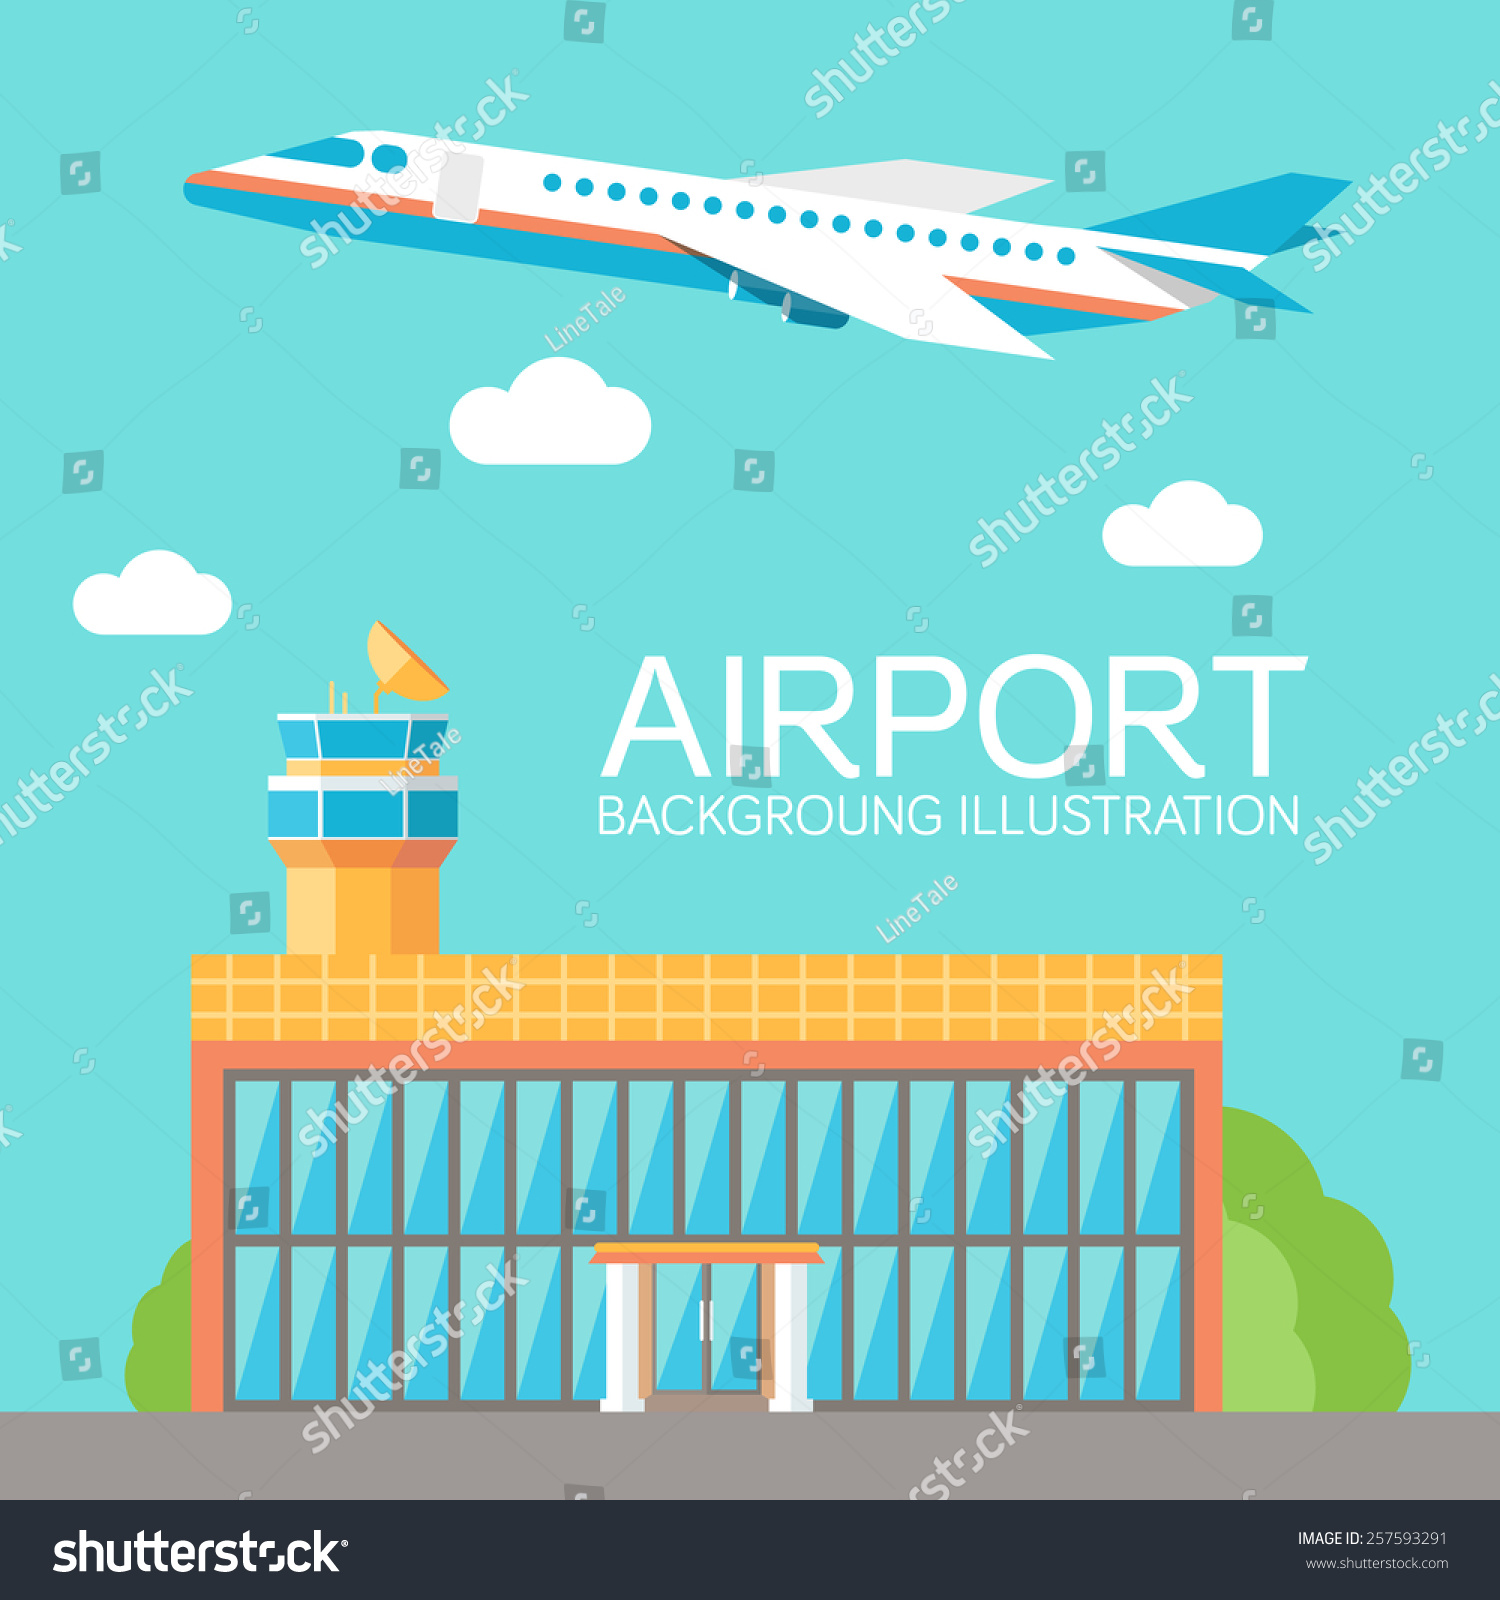 airport safety clipart - photo #14